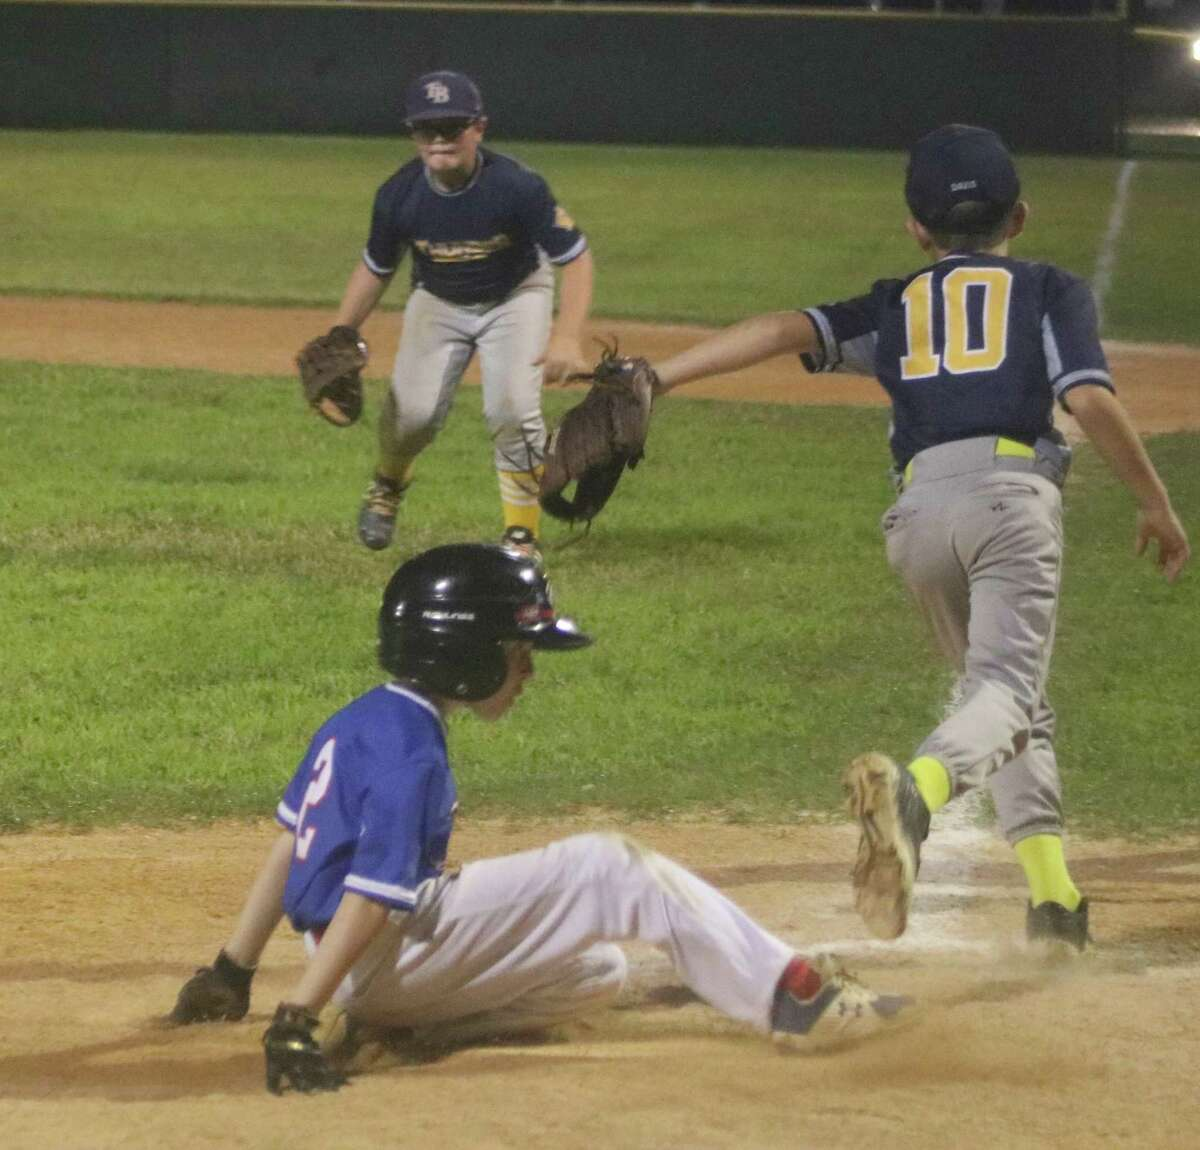 It's after 10 p.m. and Jackson Dempsey scores the winning run Thursday night. The team trailed most of the game, before scratching out an 11-10 win over the No. 7 Thunder in seven innings.